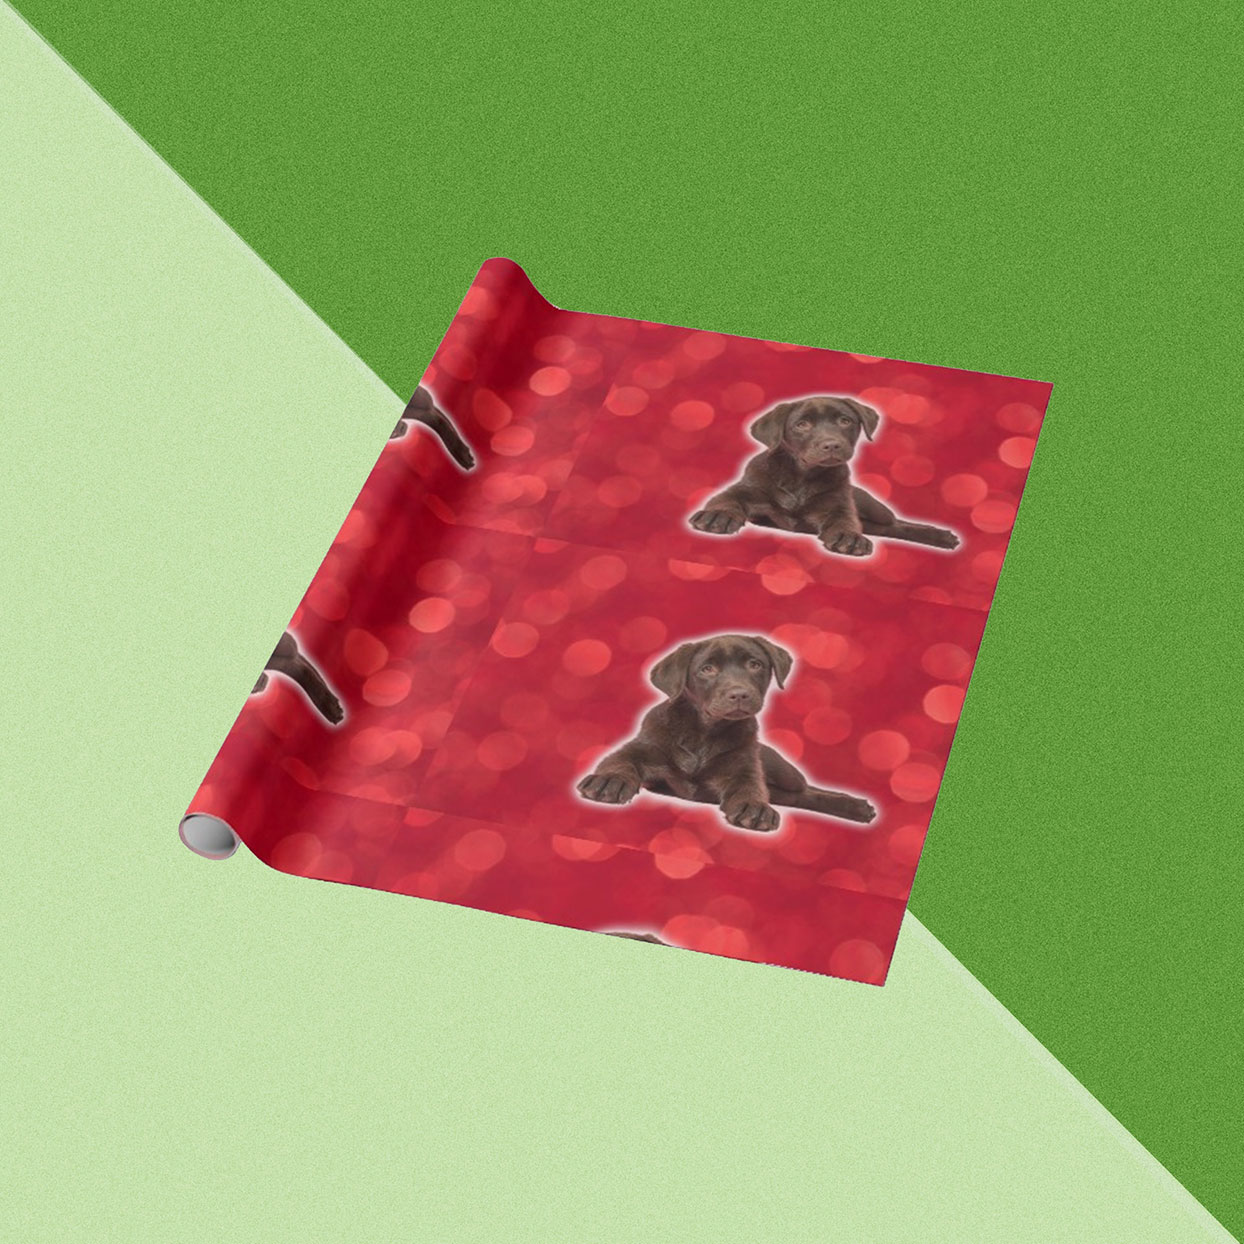 wrapping paper with dogs printed on it